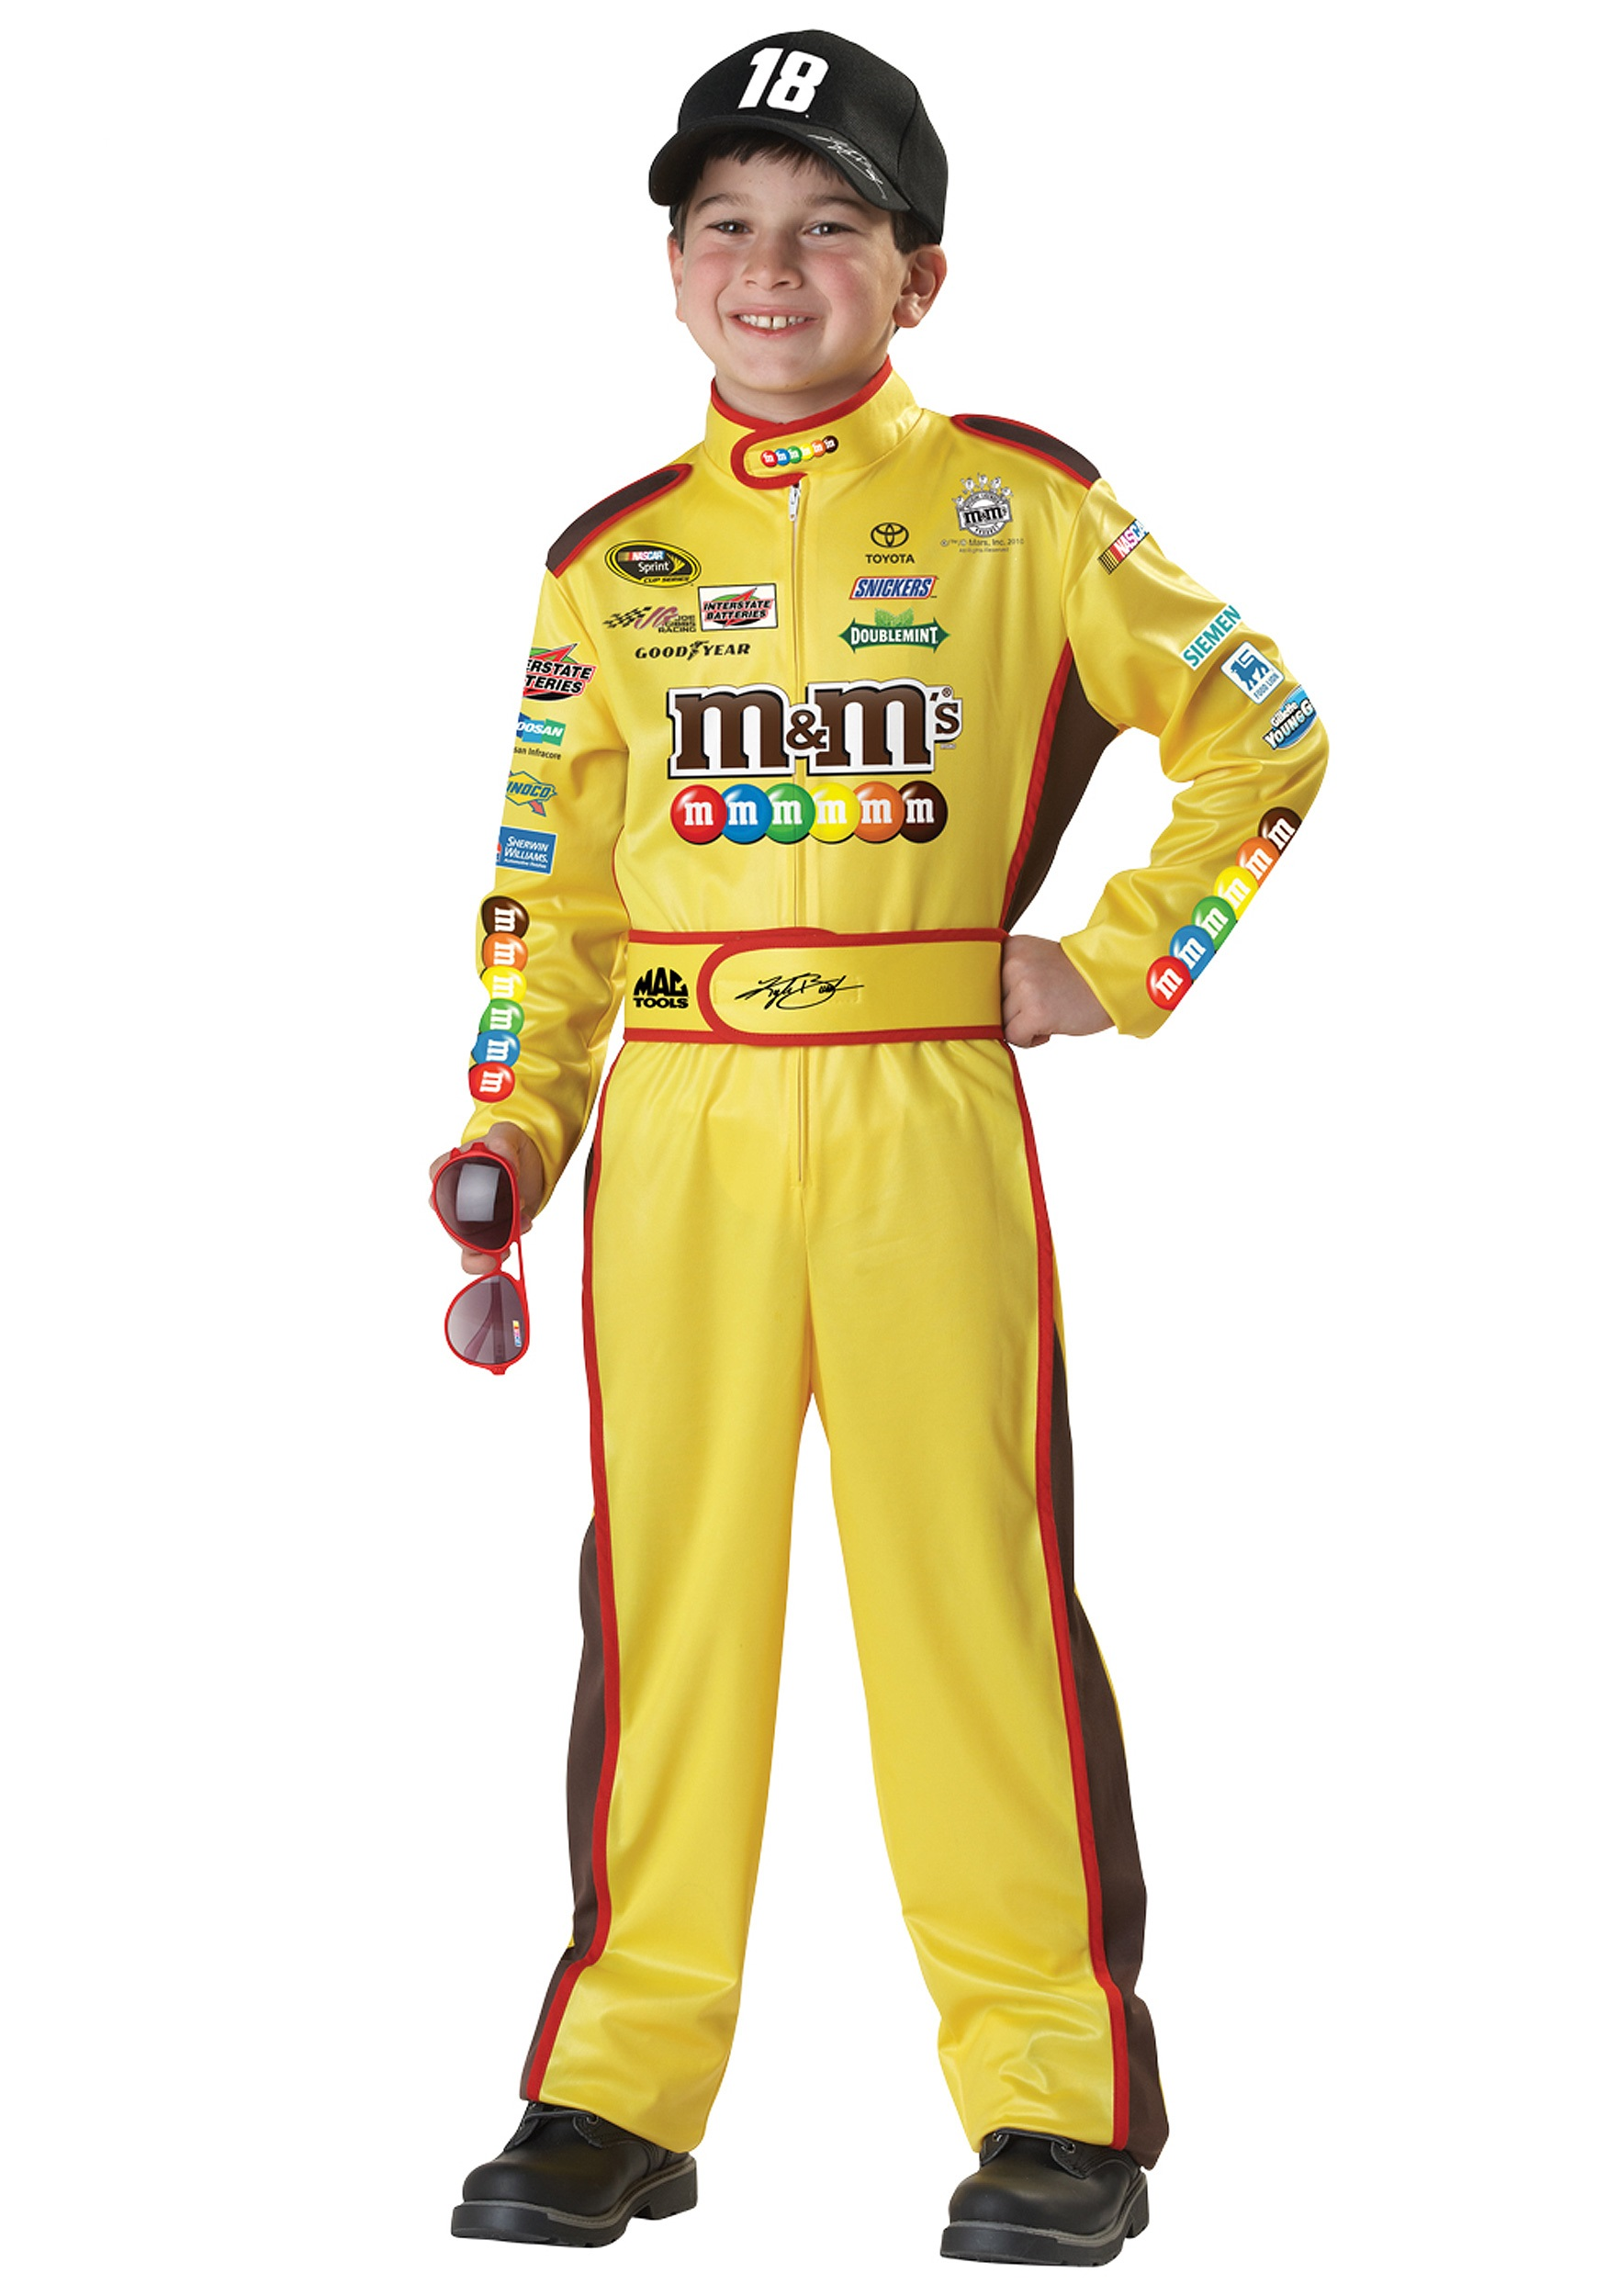 Fullsize Of Race Car Driver Costume